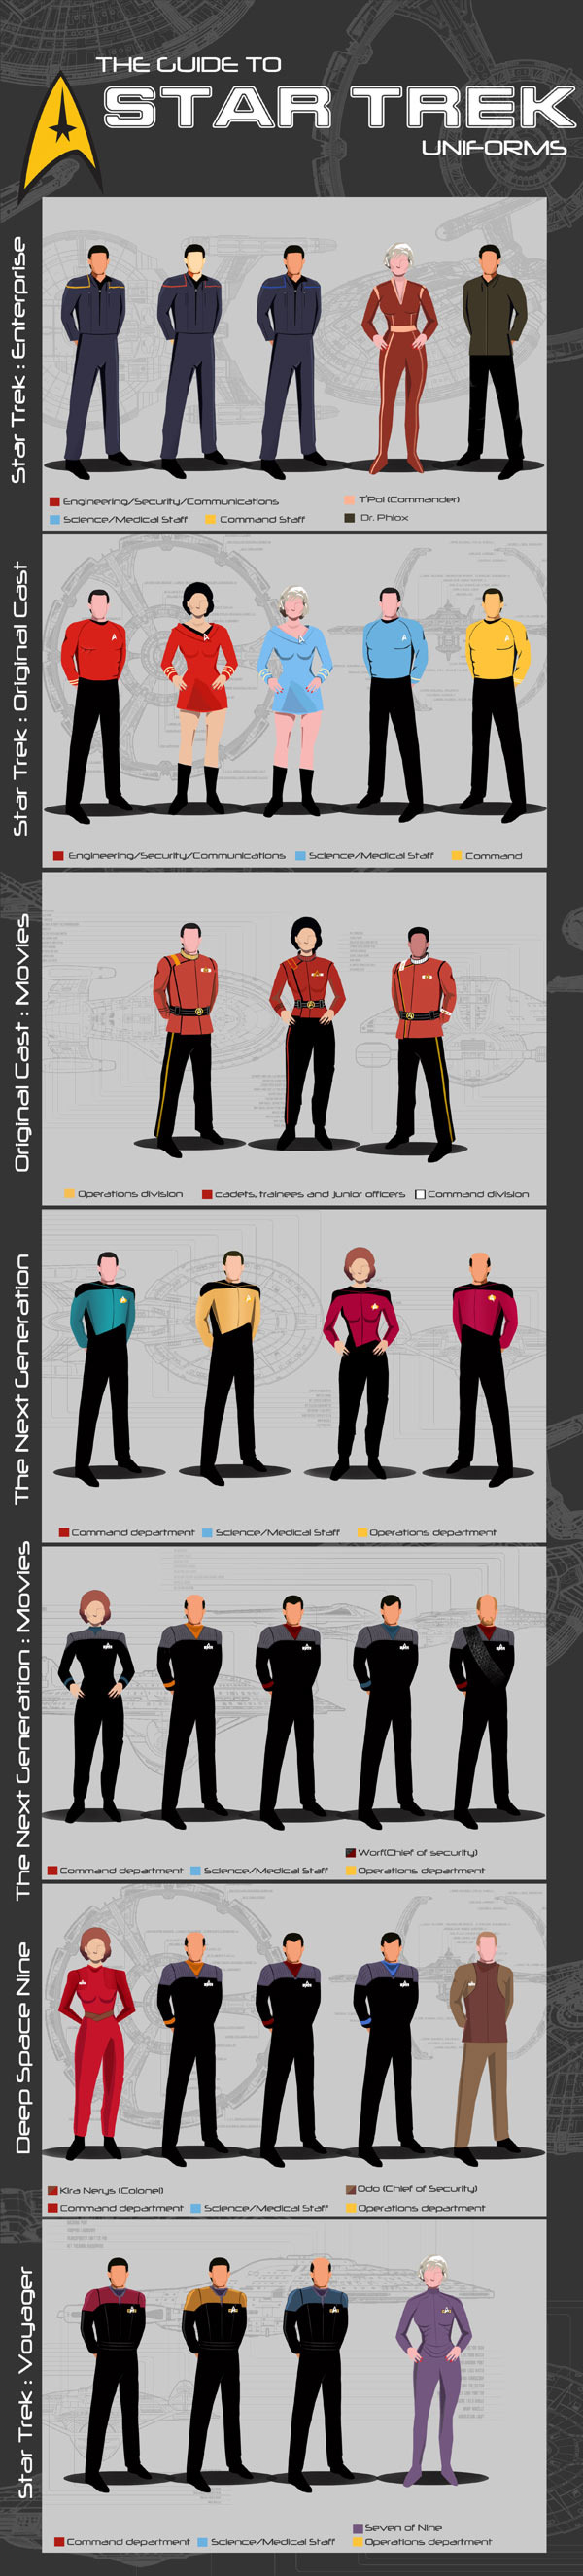 The Guide to Star Trek Uniforms infographic